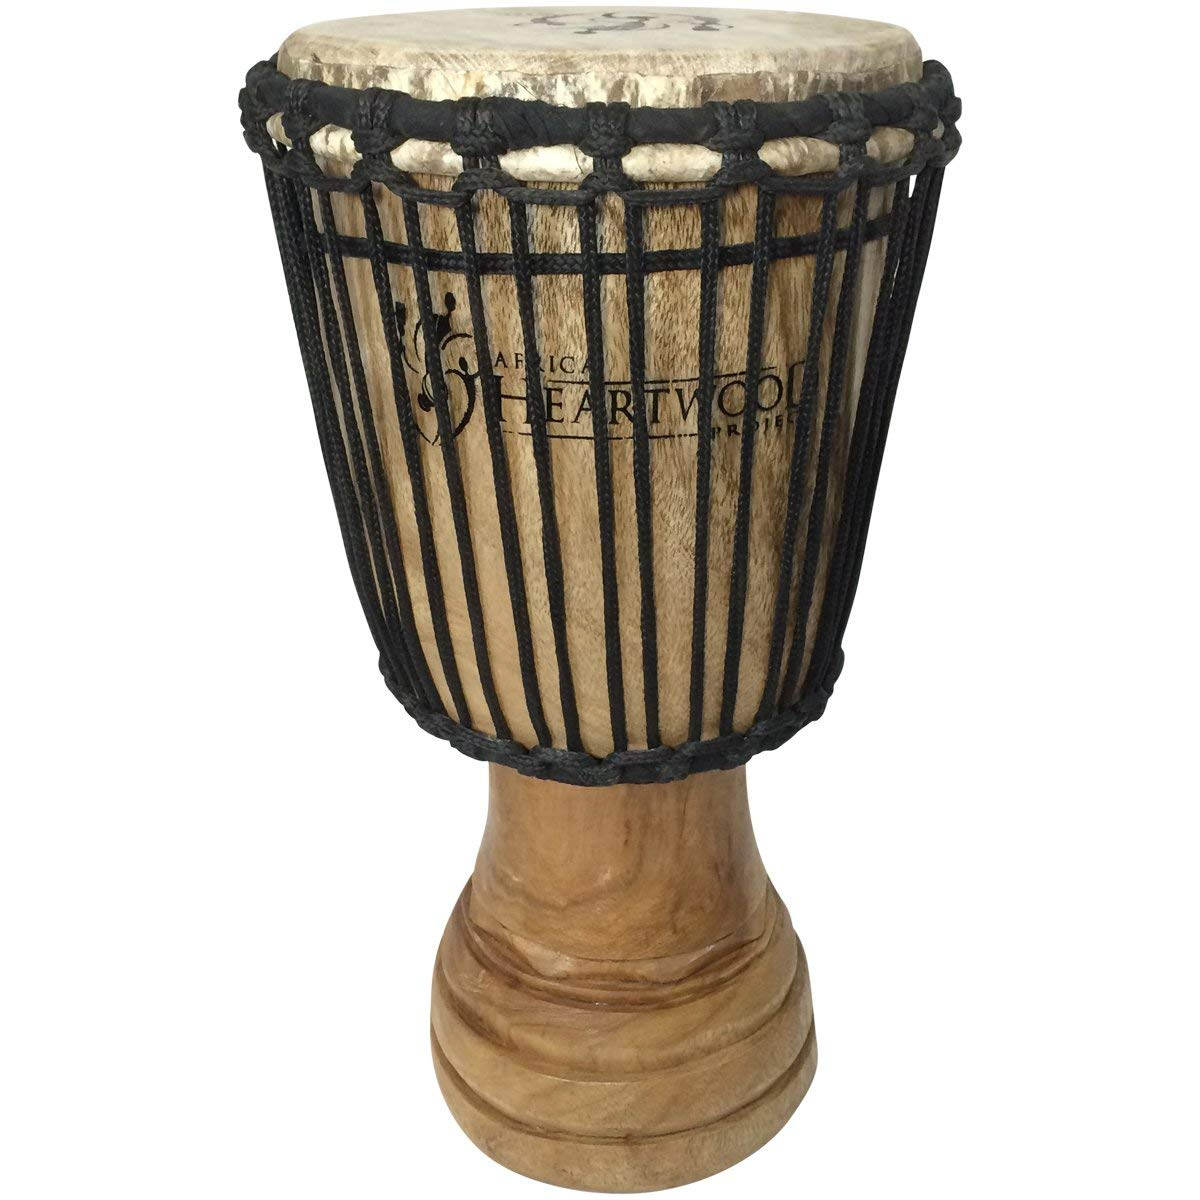 Hand-carved African Djembe Drum - Solid Wood, Goat Skin - Made in Ghana - 8x16 by Africa Heartwood Project